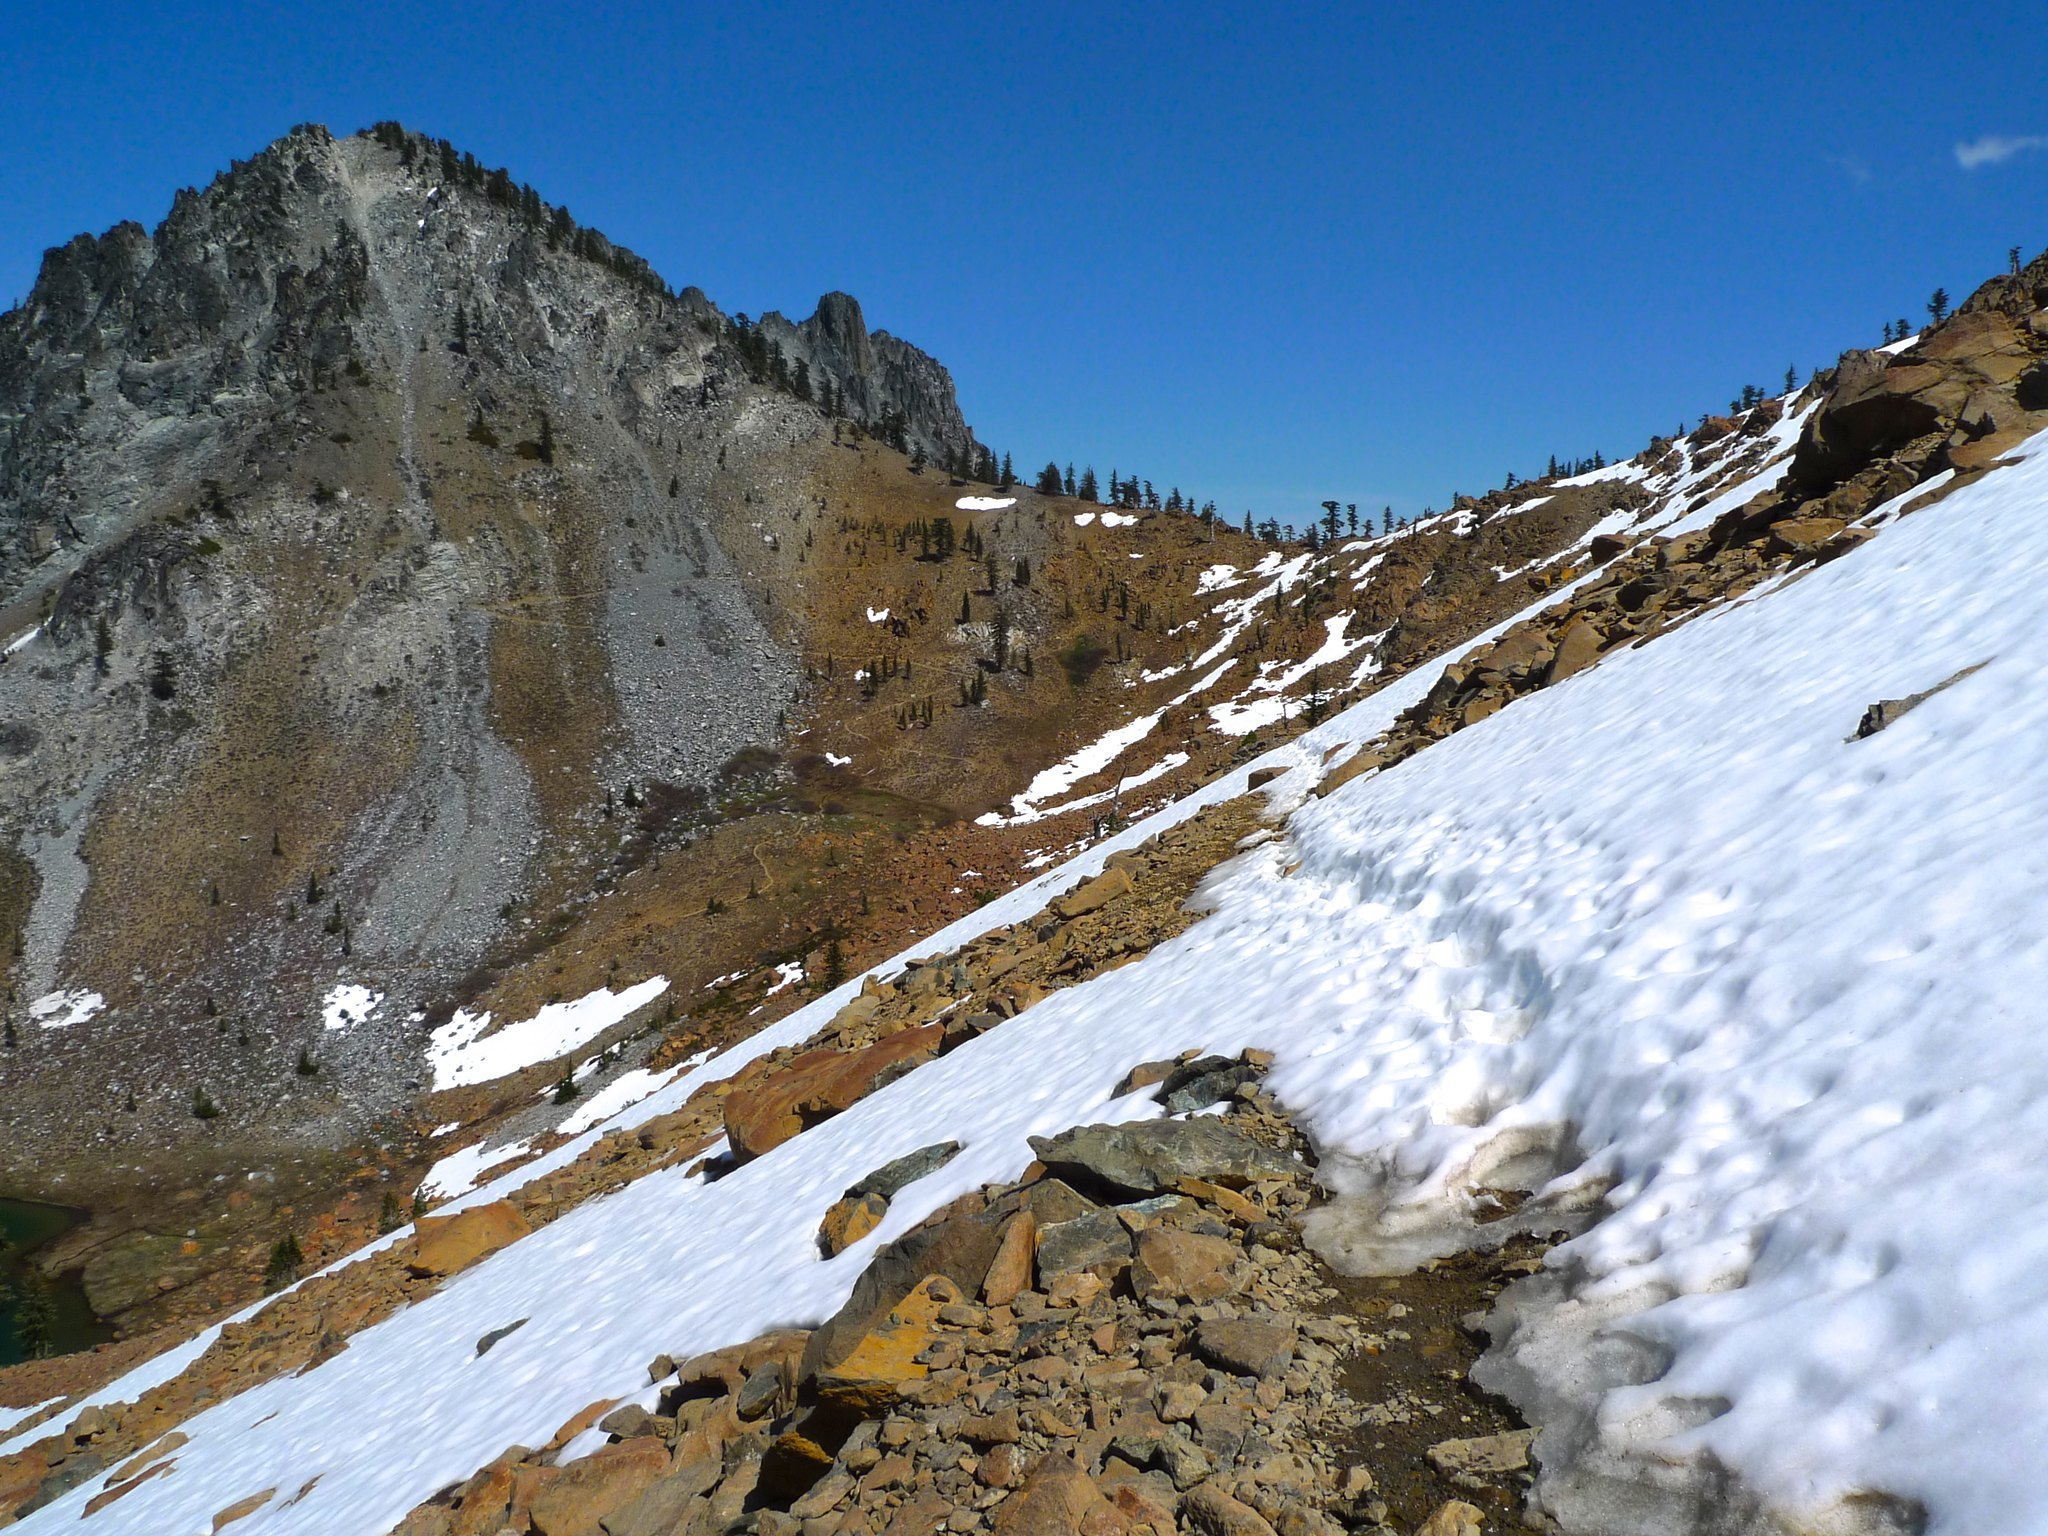 The trail to Summit Lake from Deer Pass is north facing and holds snow longer than elsewhere. I was crossing in the afternoon, which made for slow going as I kicked through thin crusts to solid footing of the rocks below. I didn't want to step and punch t